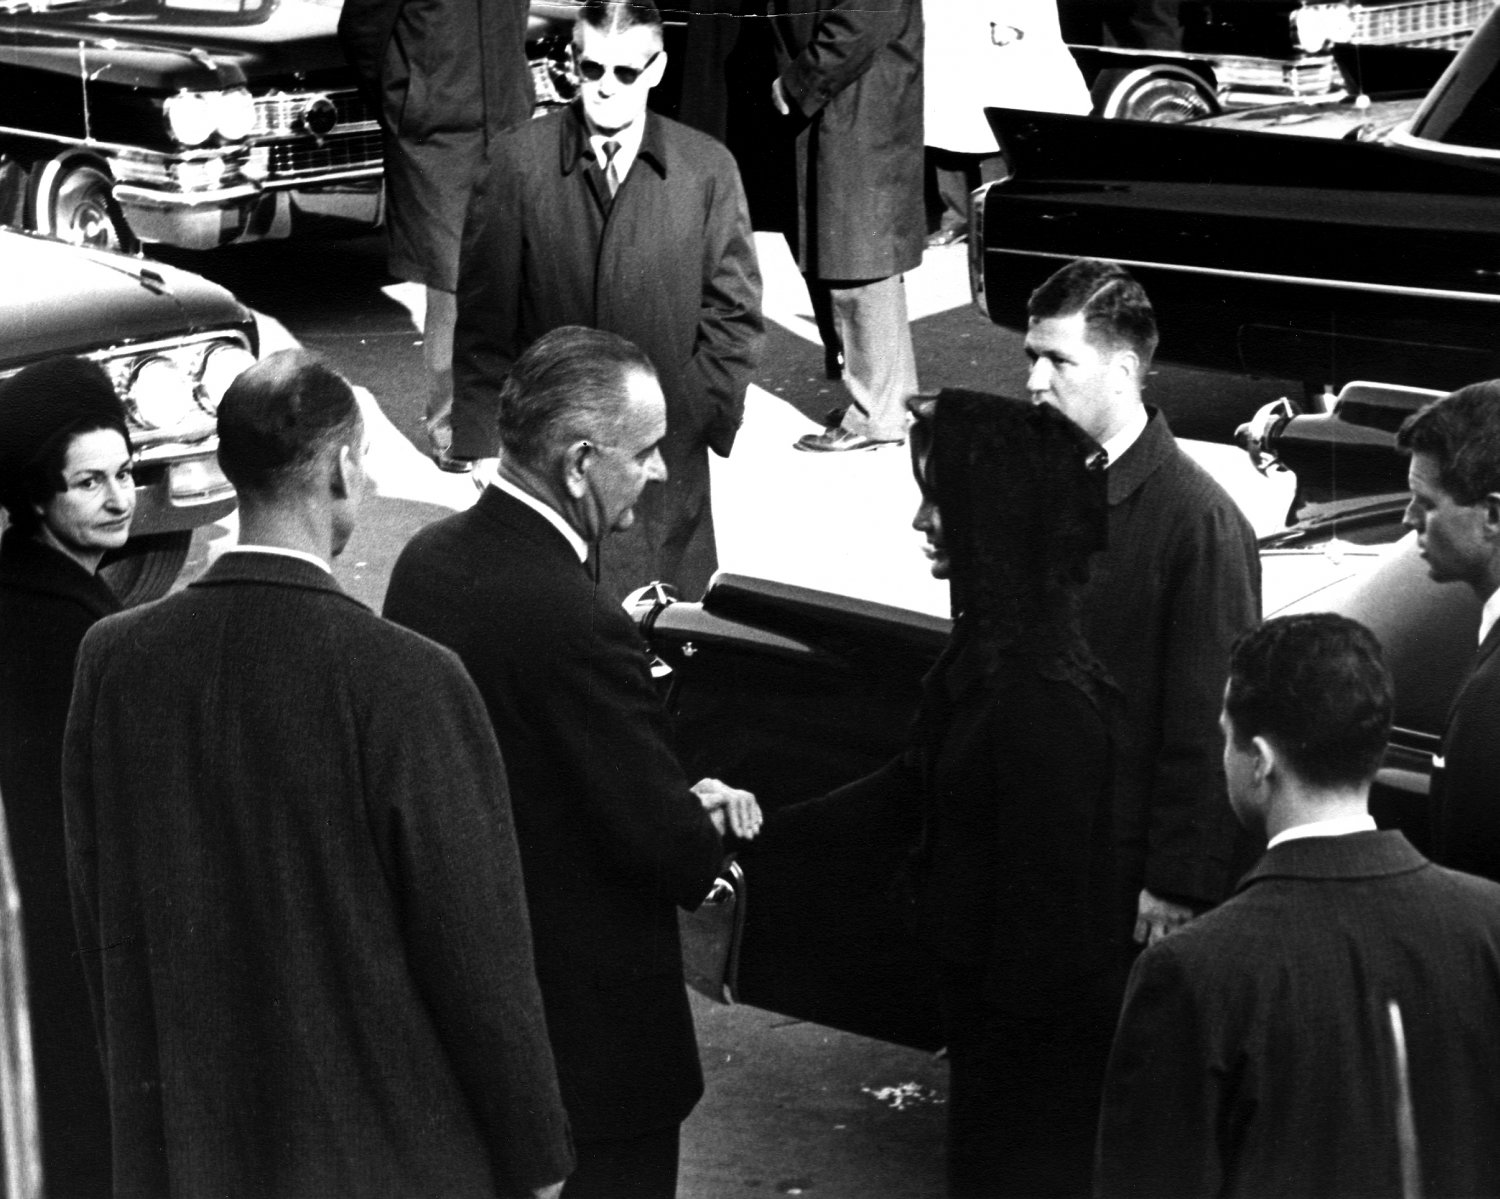 LYNDON JOHNSON HOLDS JACKIE KENNEDY'S HAND OUTSIDE CAPITOL - 8X10 PHOTO (DD-157)